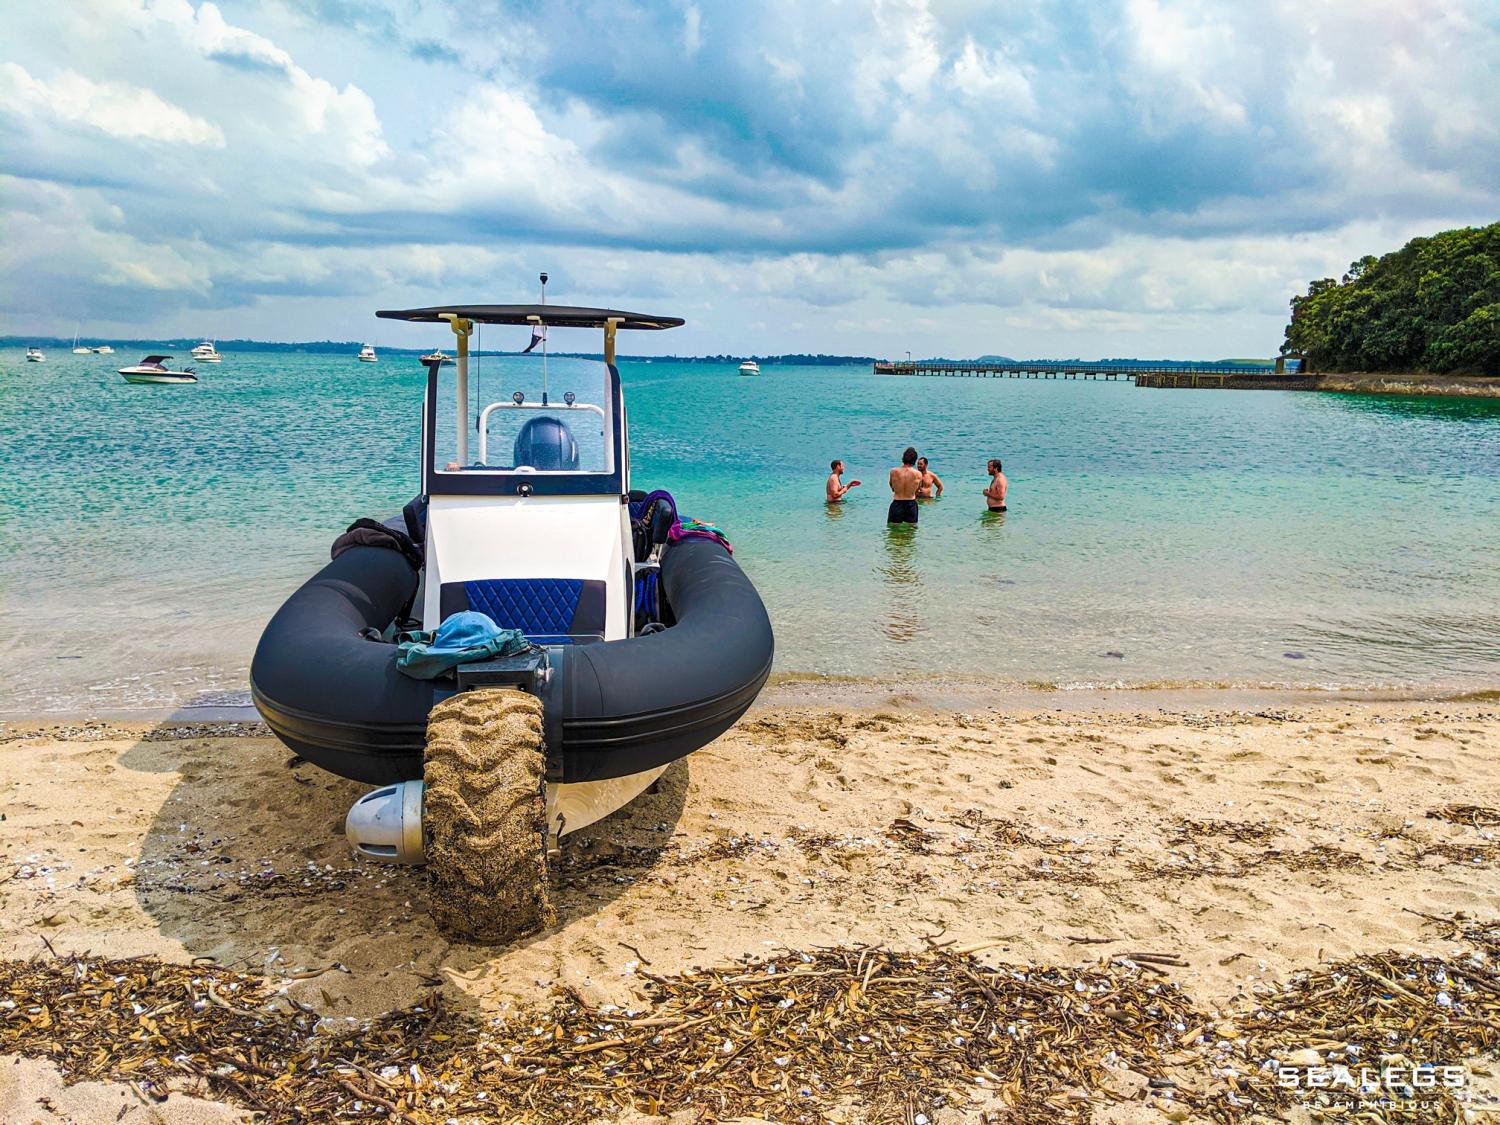 Sealegs Amphibious Boats Feature 3 Retractable Wheels To Get In and Out Of Water